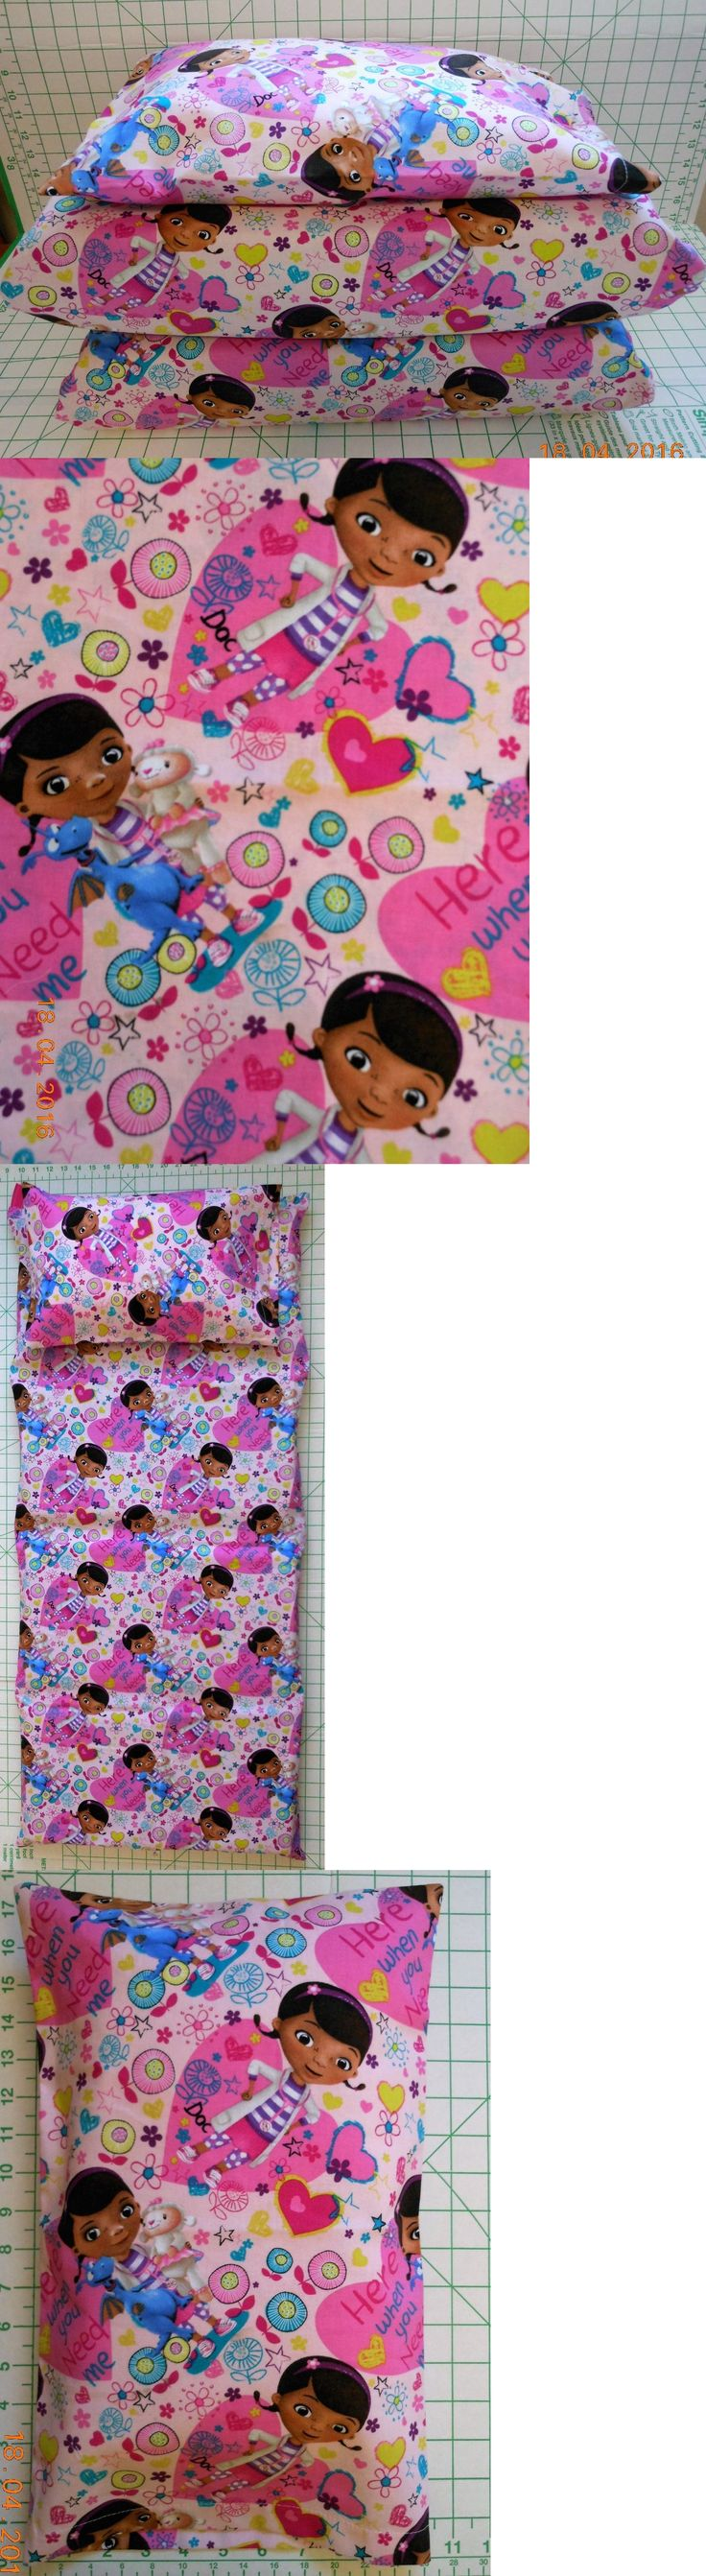 Other Kids and Teens Items 176989: Doc Mcstuffins Here When You Need Me - Kinder Mat Cover 3 Piece Set -> BUY IT NOW ONLY: $39 on eBay!